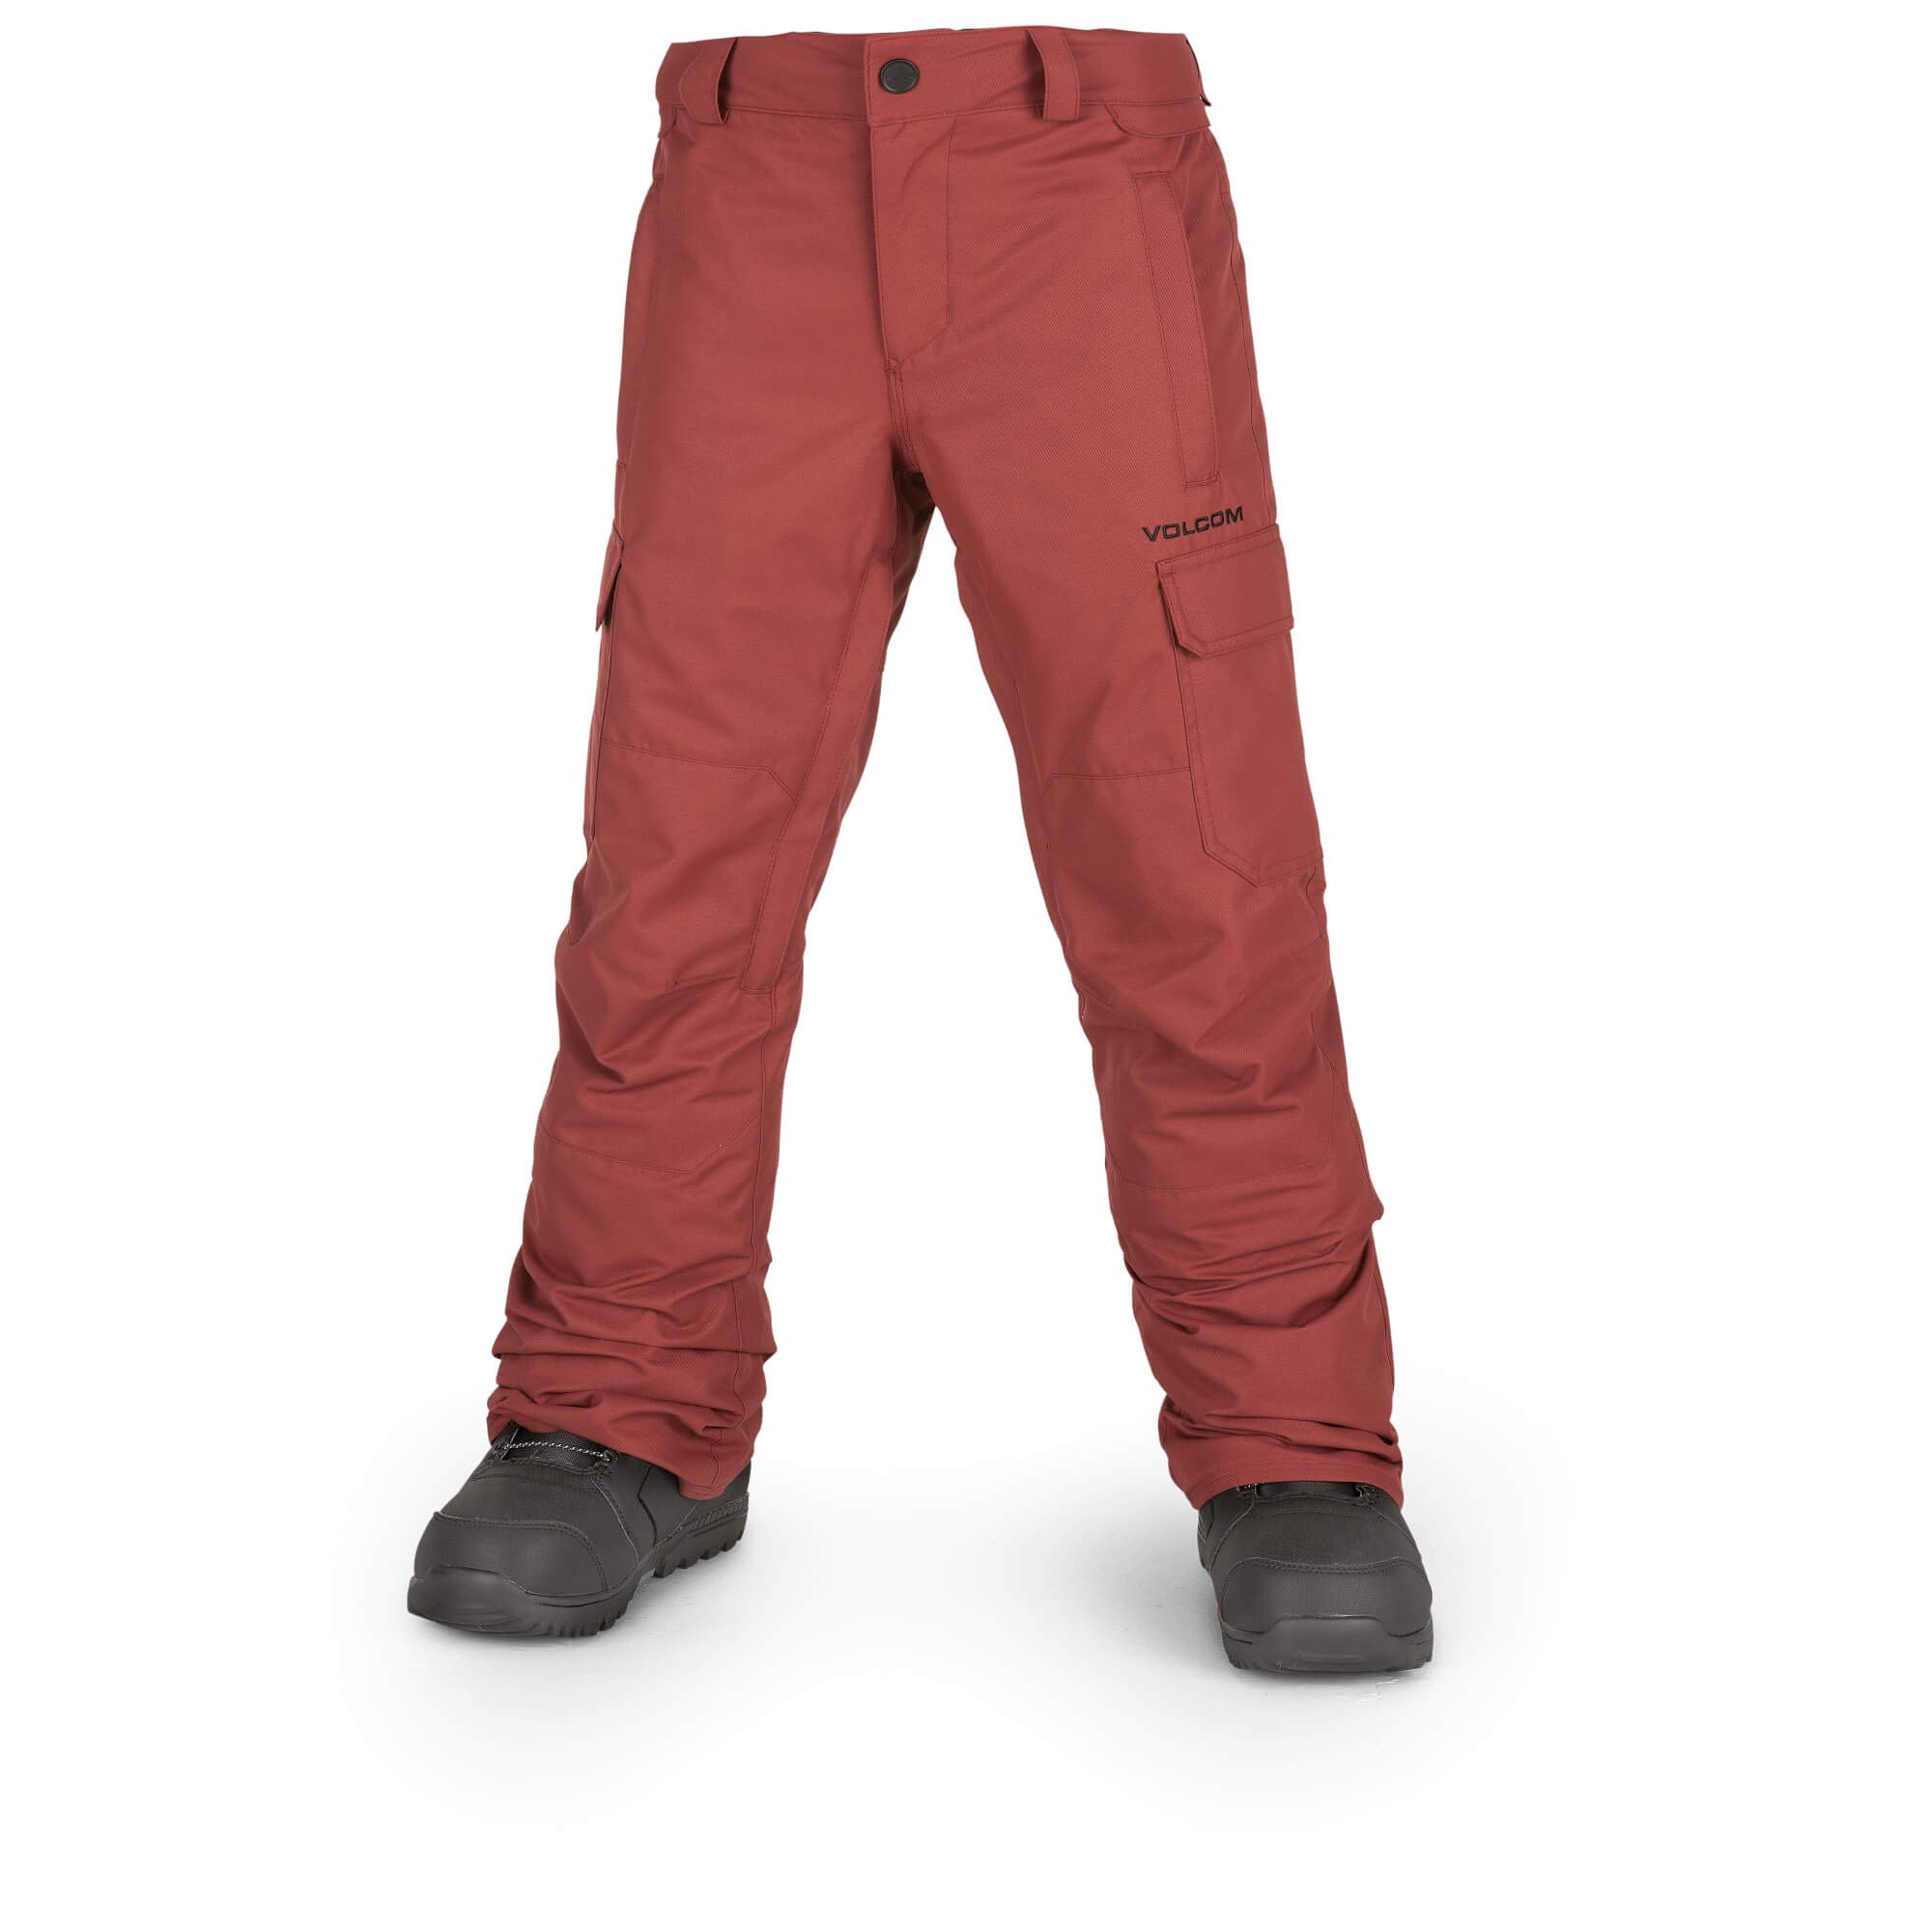 Volcom Boys' Big Cargo Insulated 2 Layer Shell Snow Pant, Burnt red, Medium